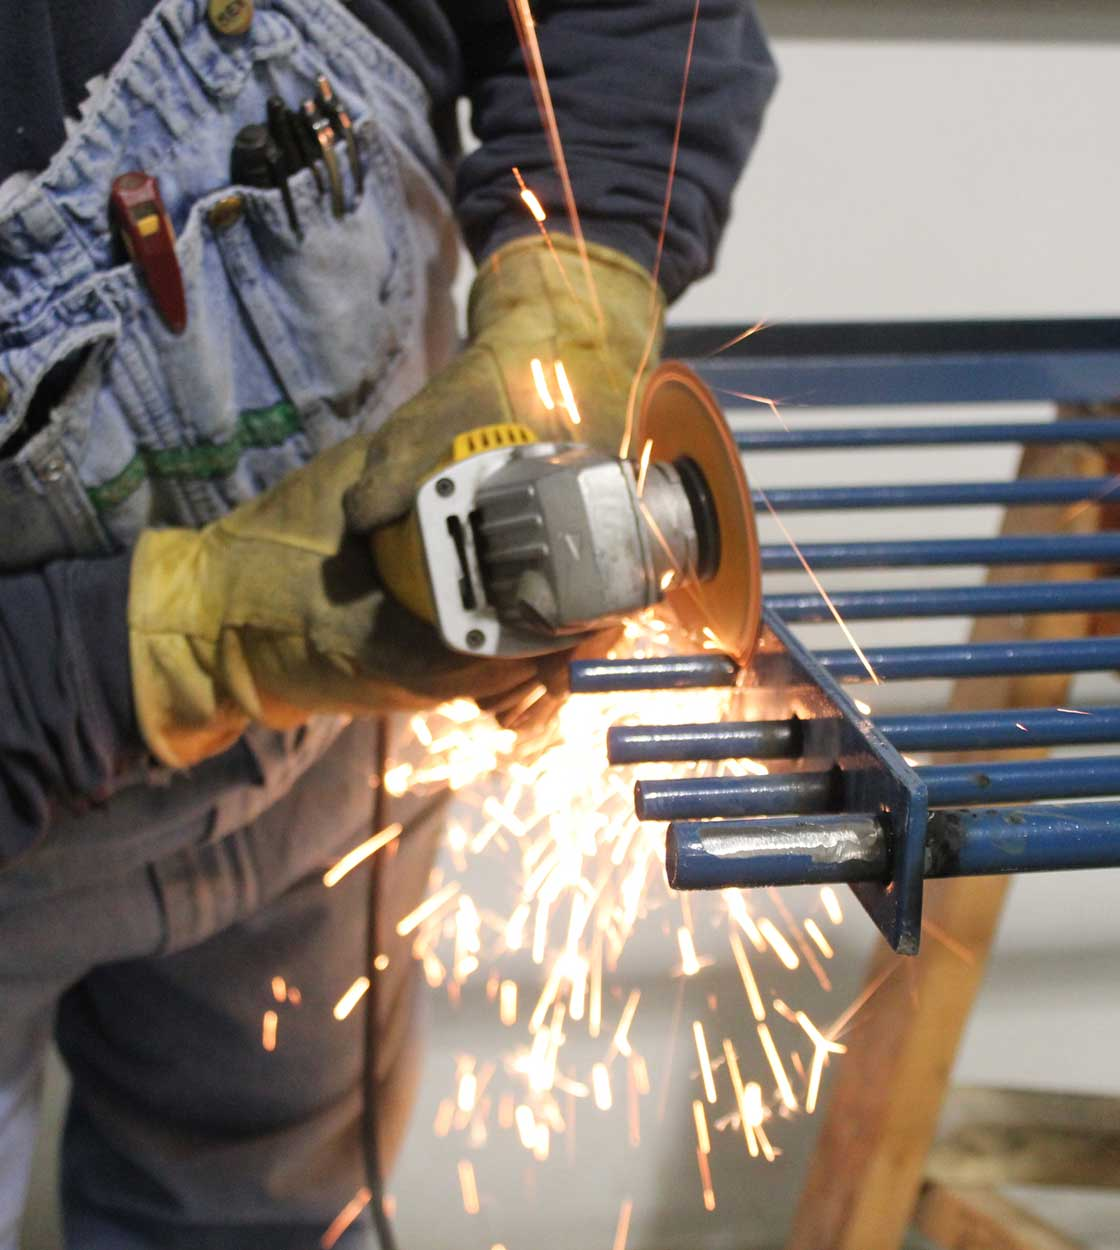 Hog Slat Cut & Weld gating panels provide the ability to construct customized DIY penning solutions right on the farm.